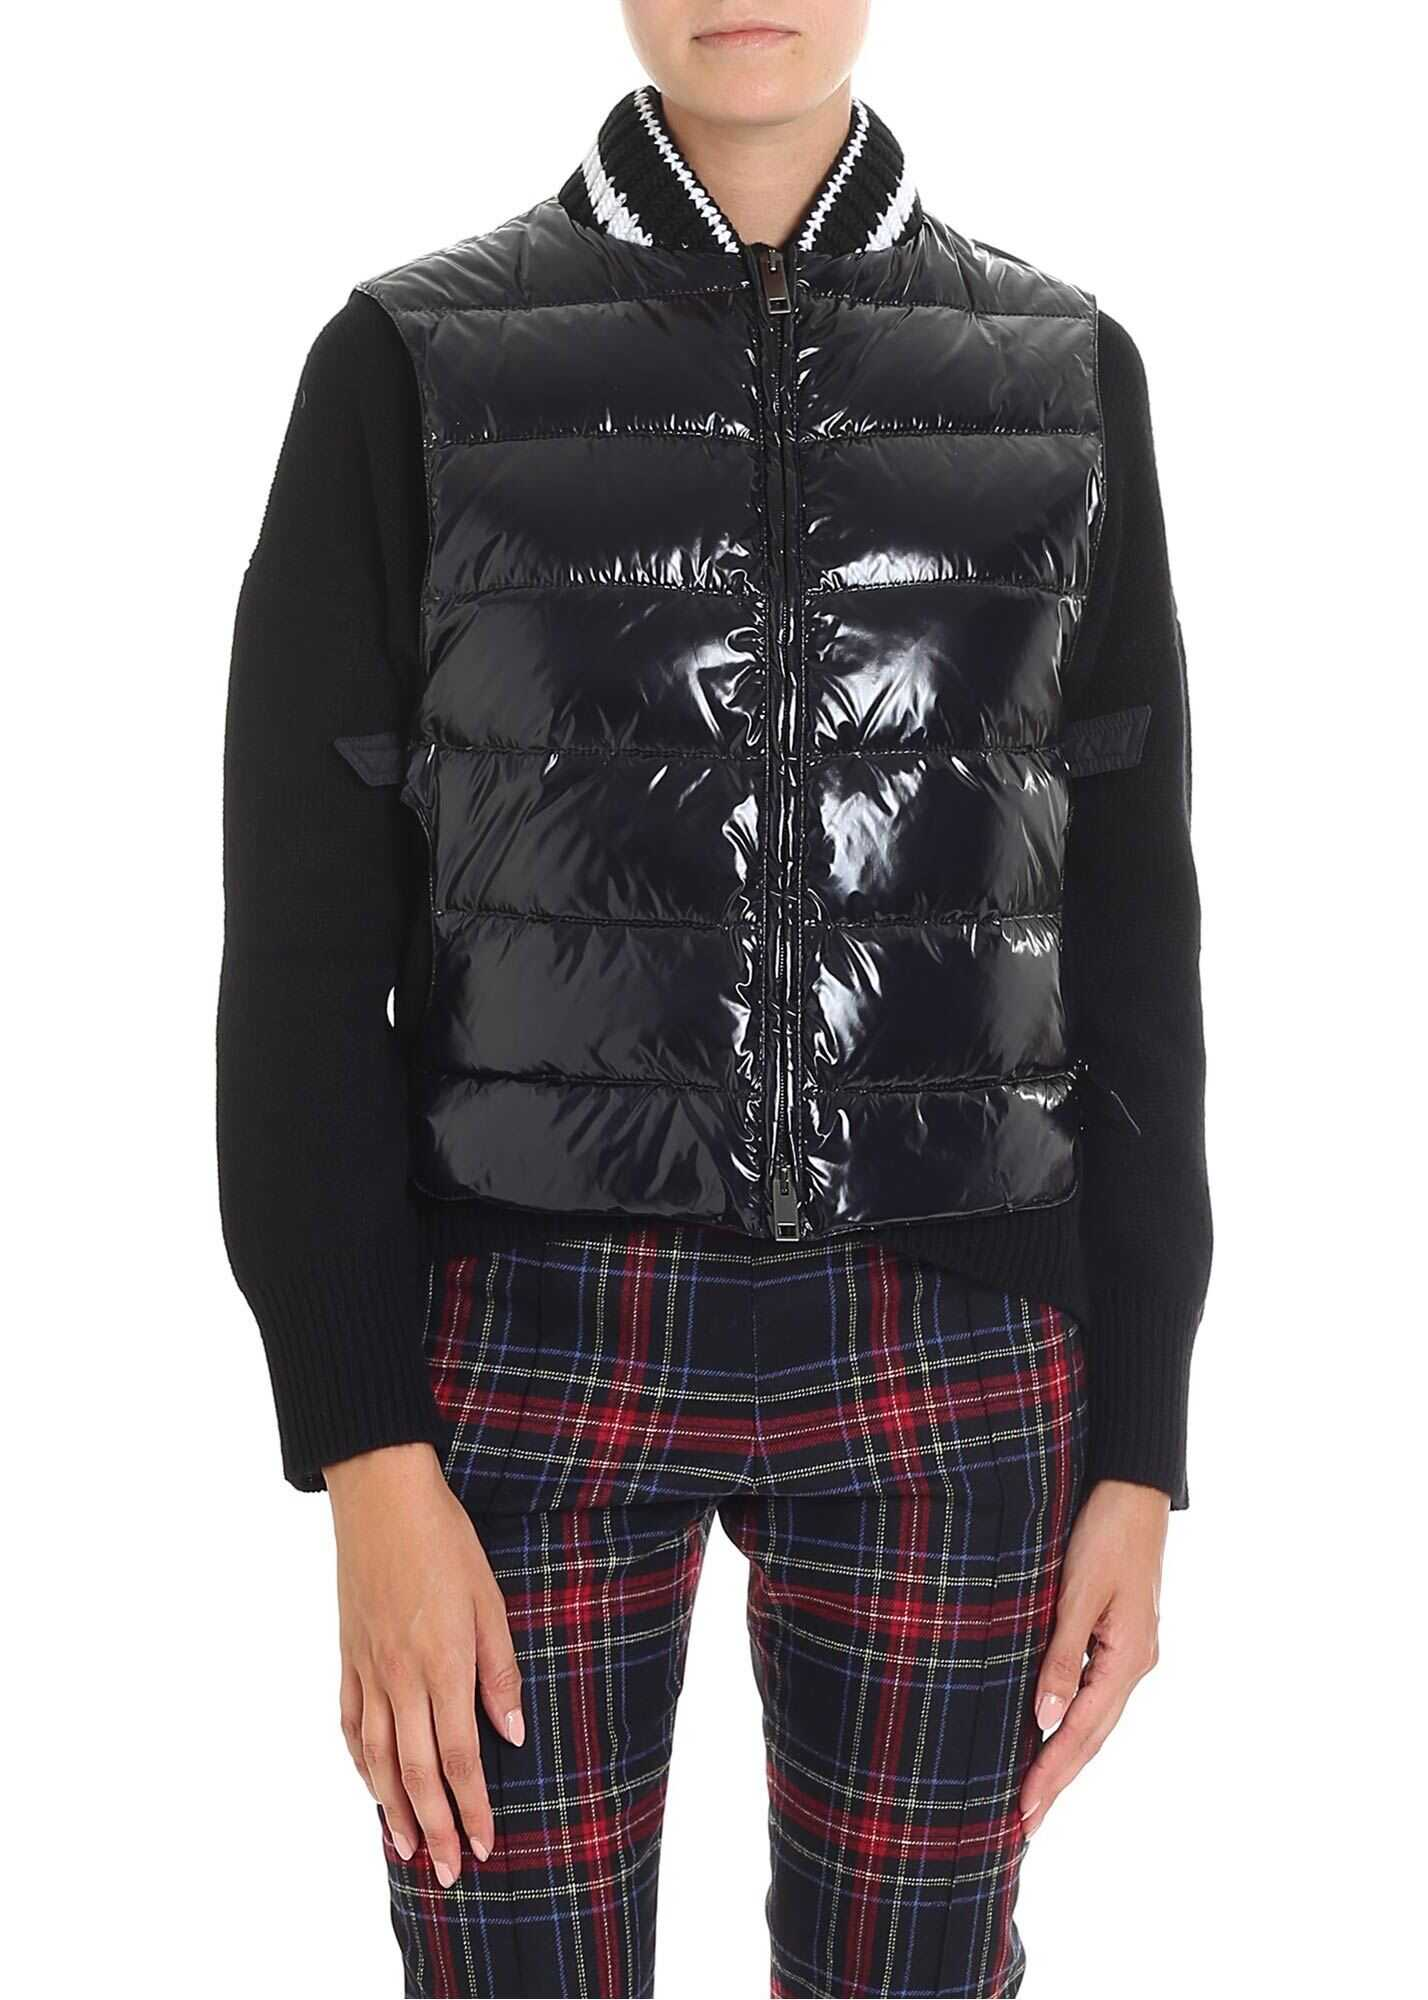 Ermanno Scervino Black Sleeveless Down Jacket With Straps Black